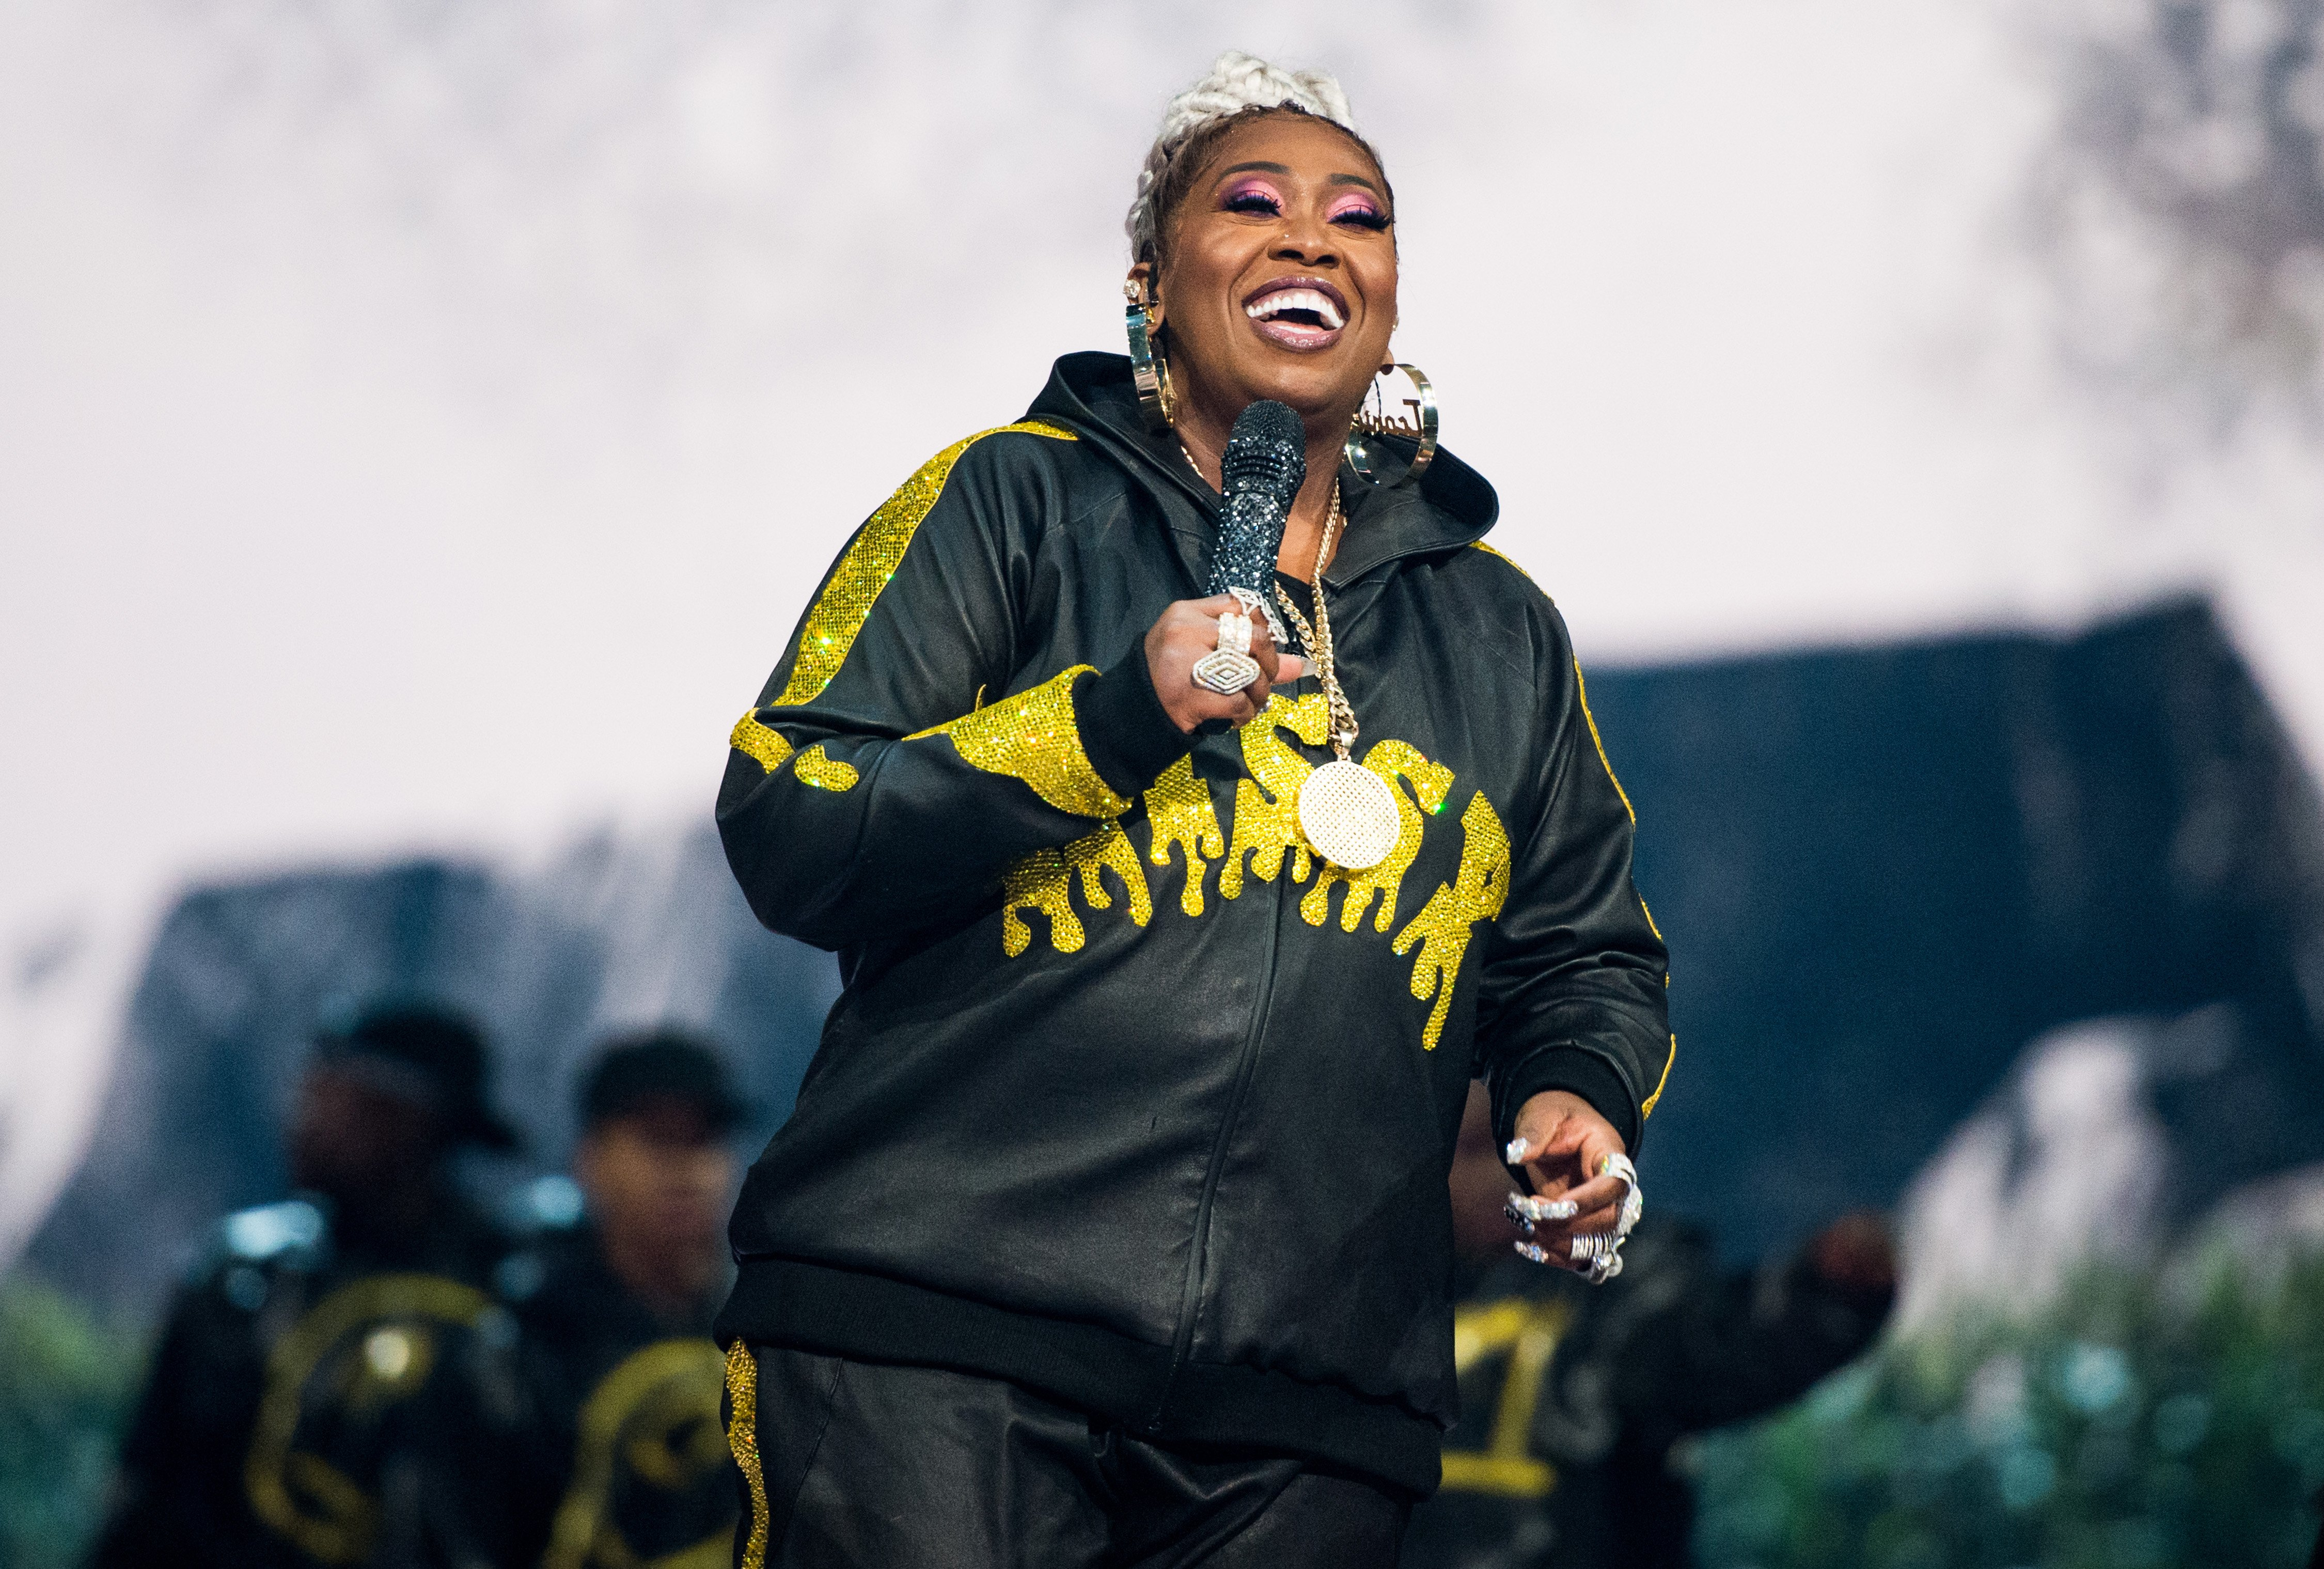 Missy Elliott performs onstage during the 2019 MTV Video Music Awards at Prudential Center on August 26, 2019 in Newark, New Jersey | Photo: GettyImages